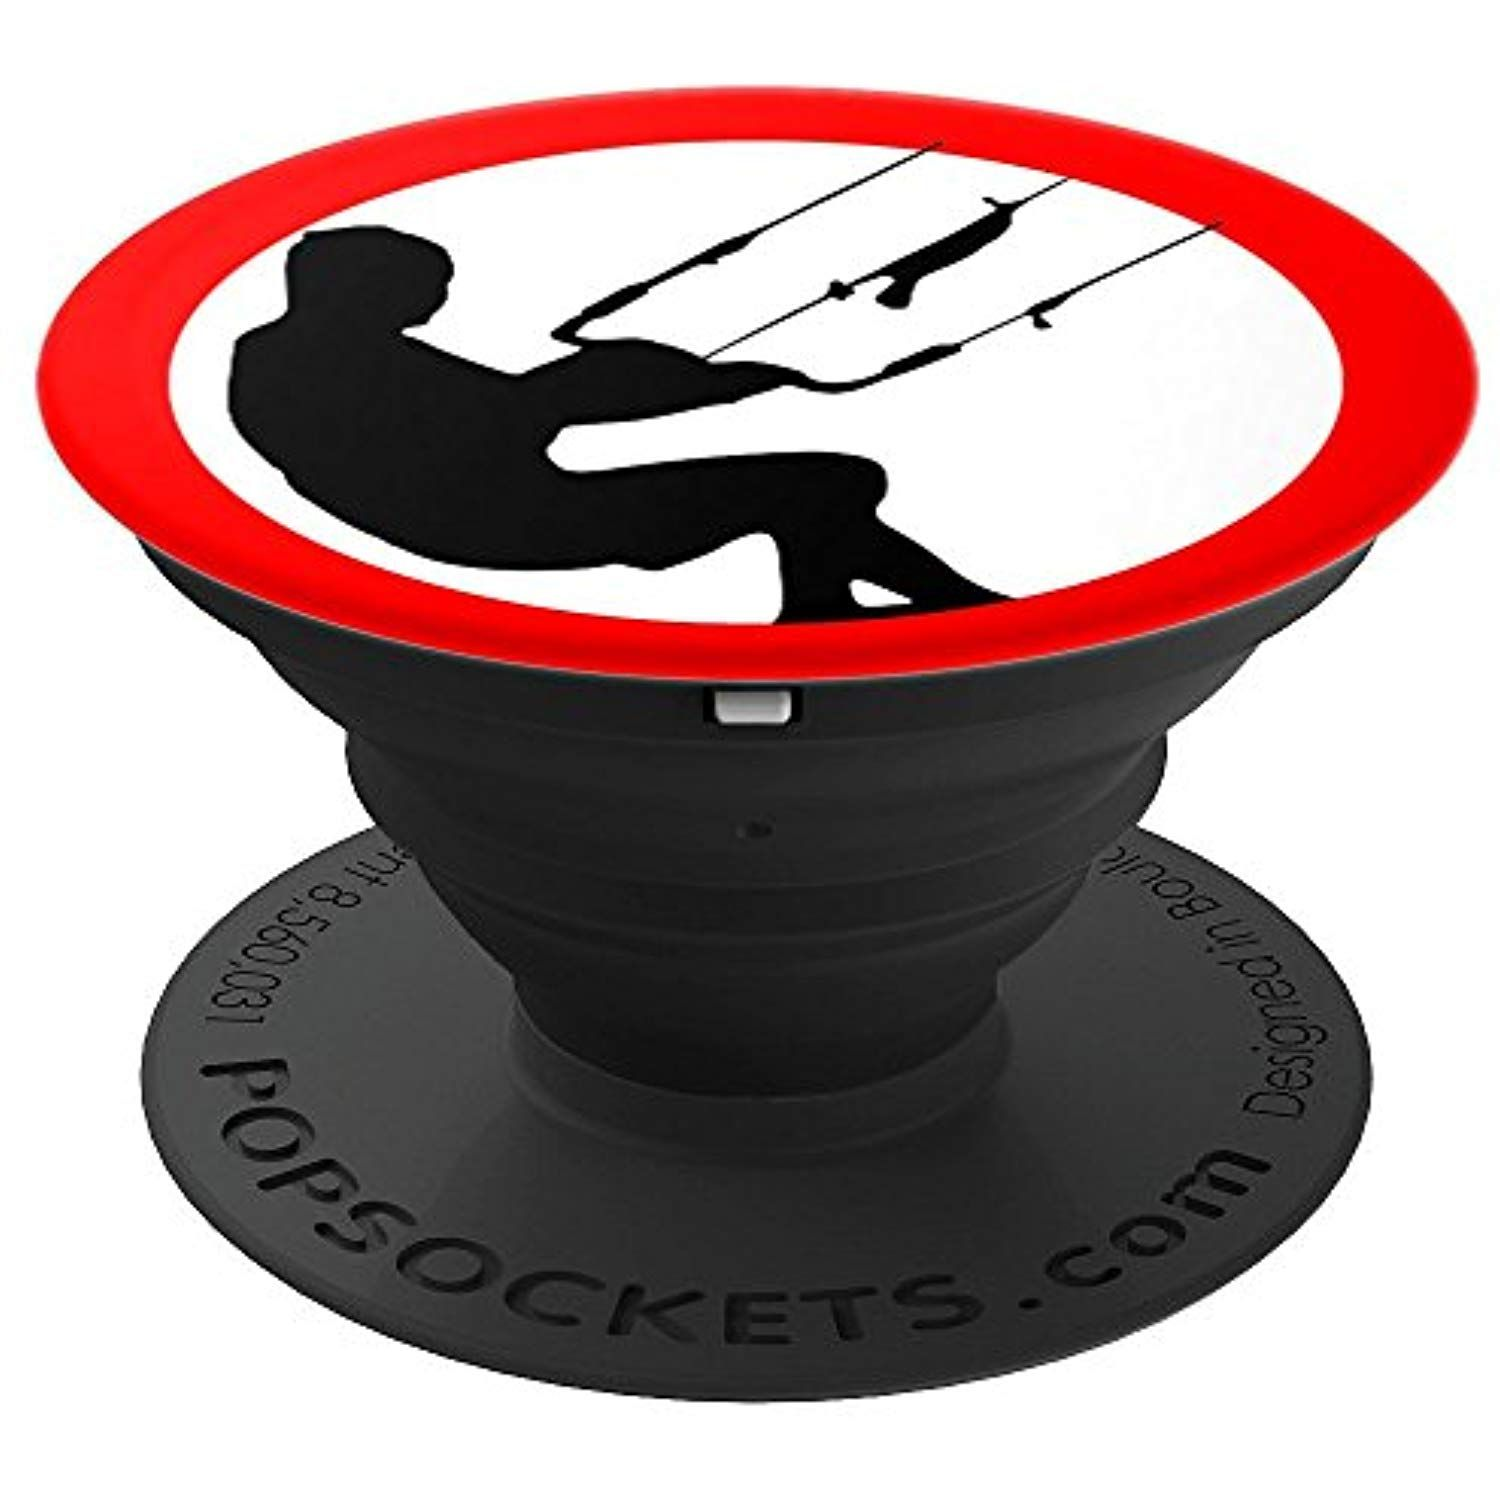 Kitesurfing popsockets grip and stand for phones and